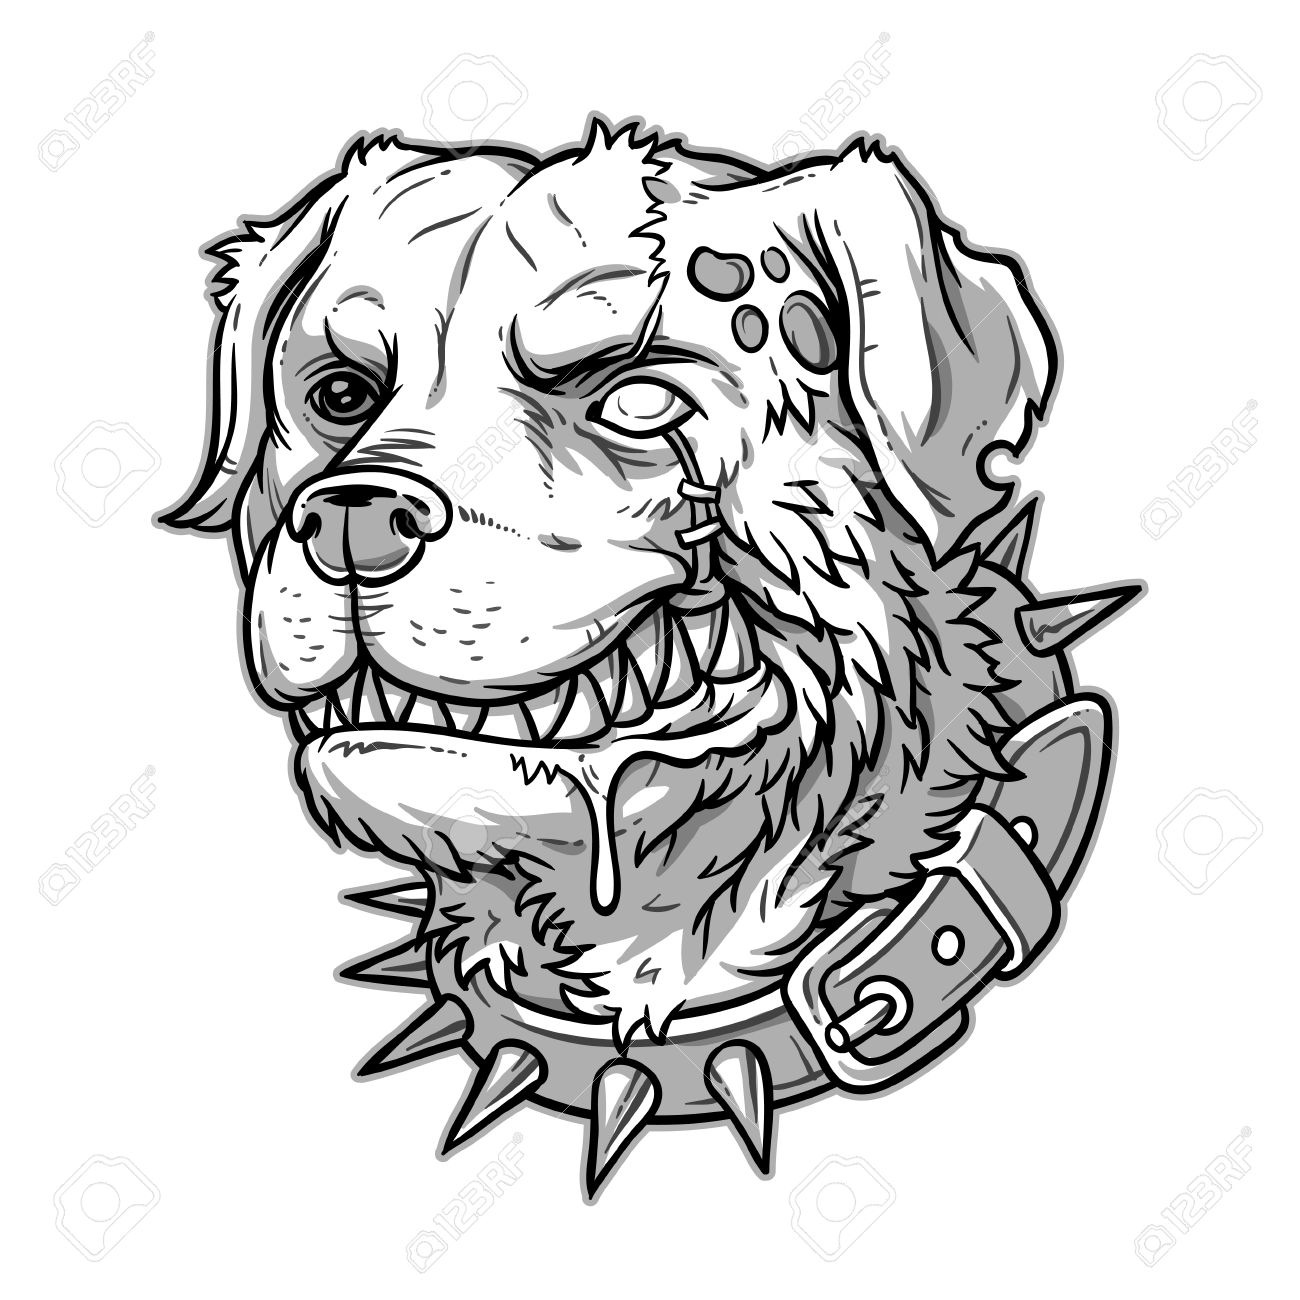 1300x1300 Vector Illustration Of Evil Mad Dog Grinning Teeth Royalty Free